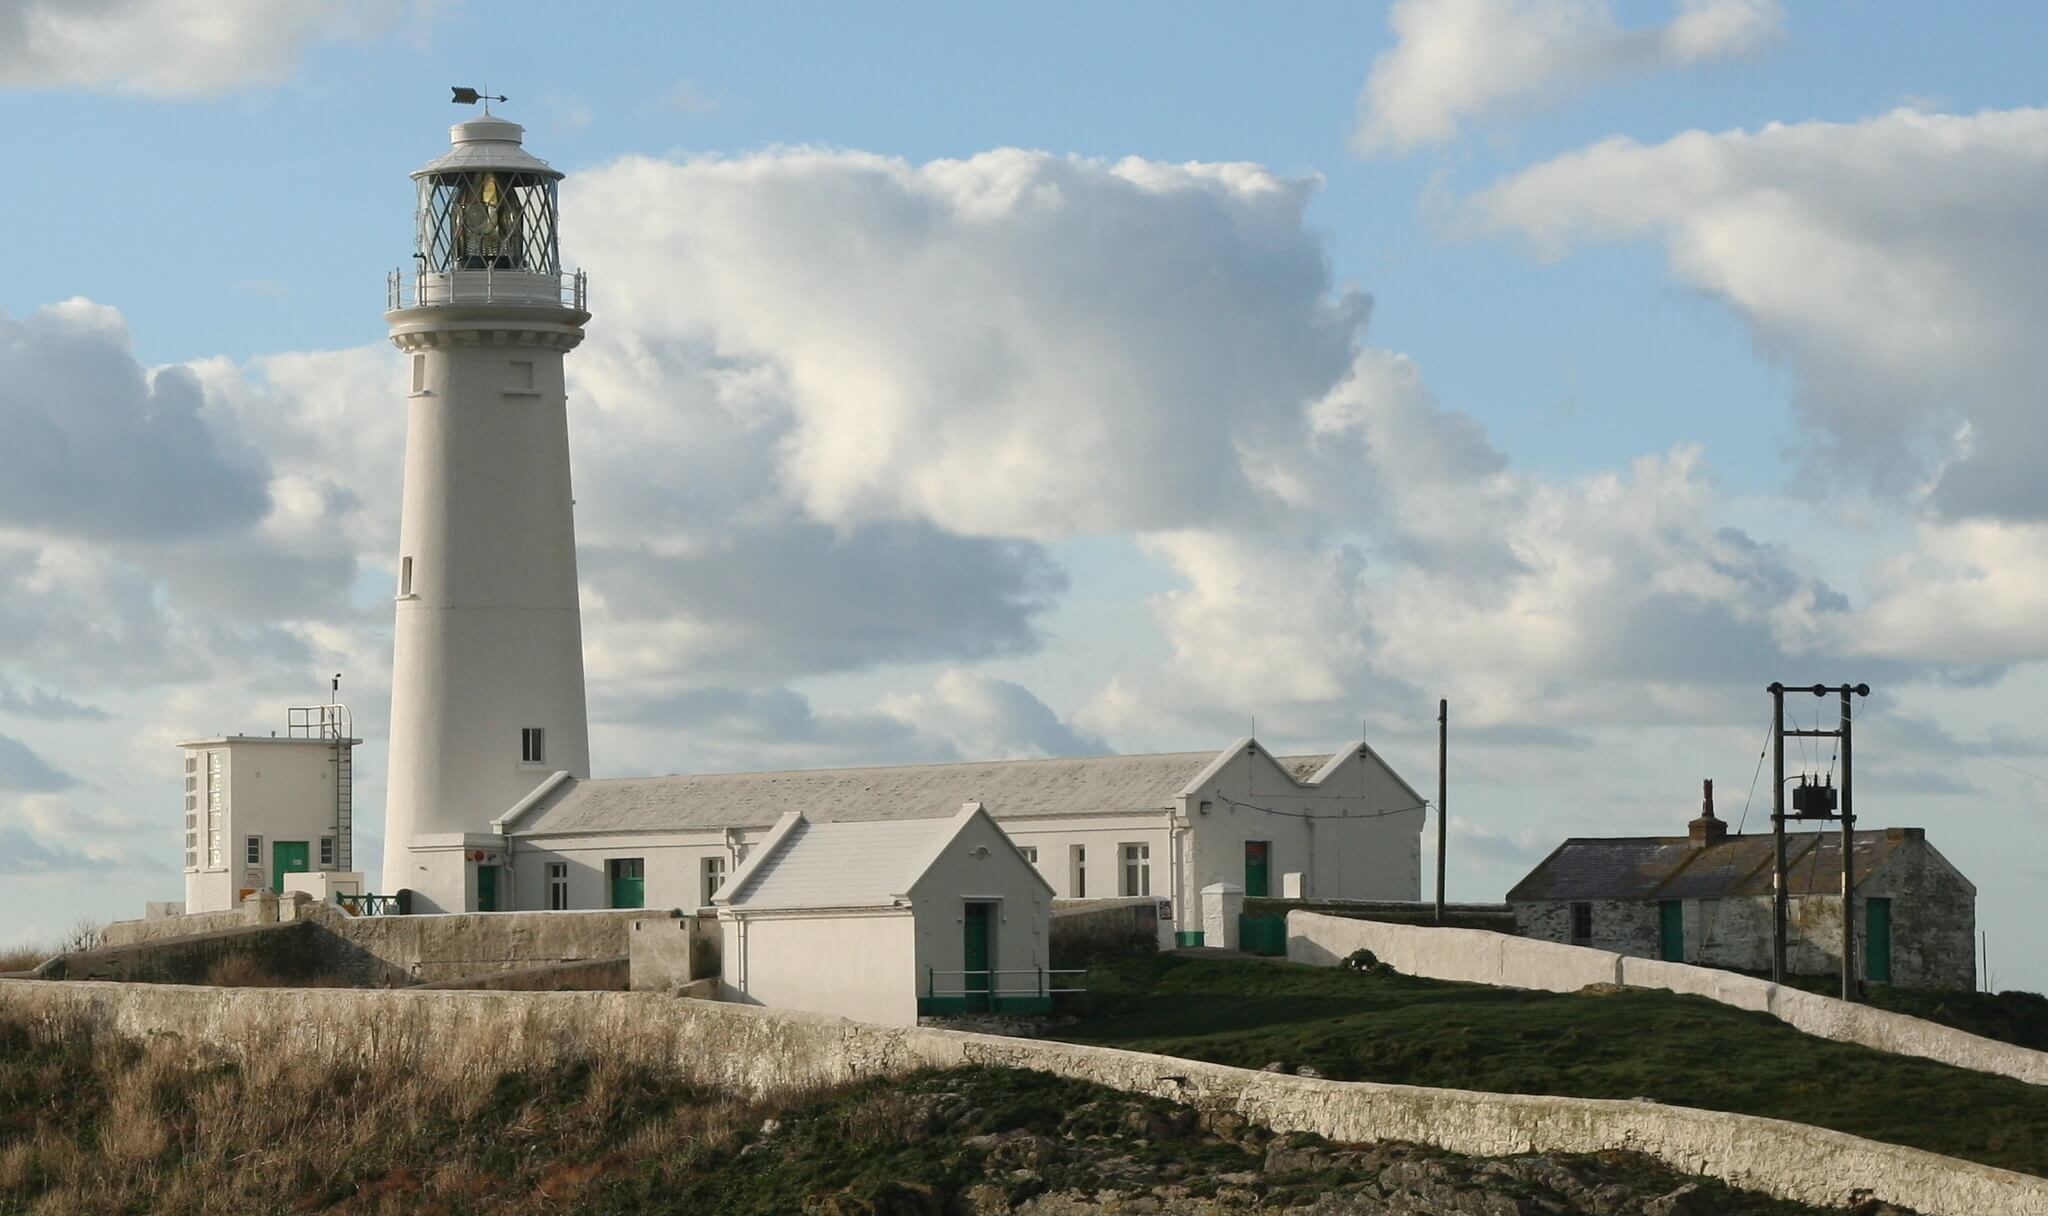 the Anglesey lighthouse is one of the best points of interest in Anglesey